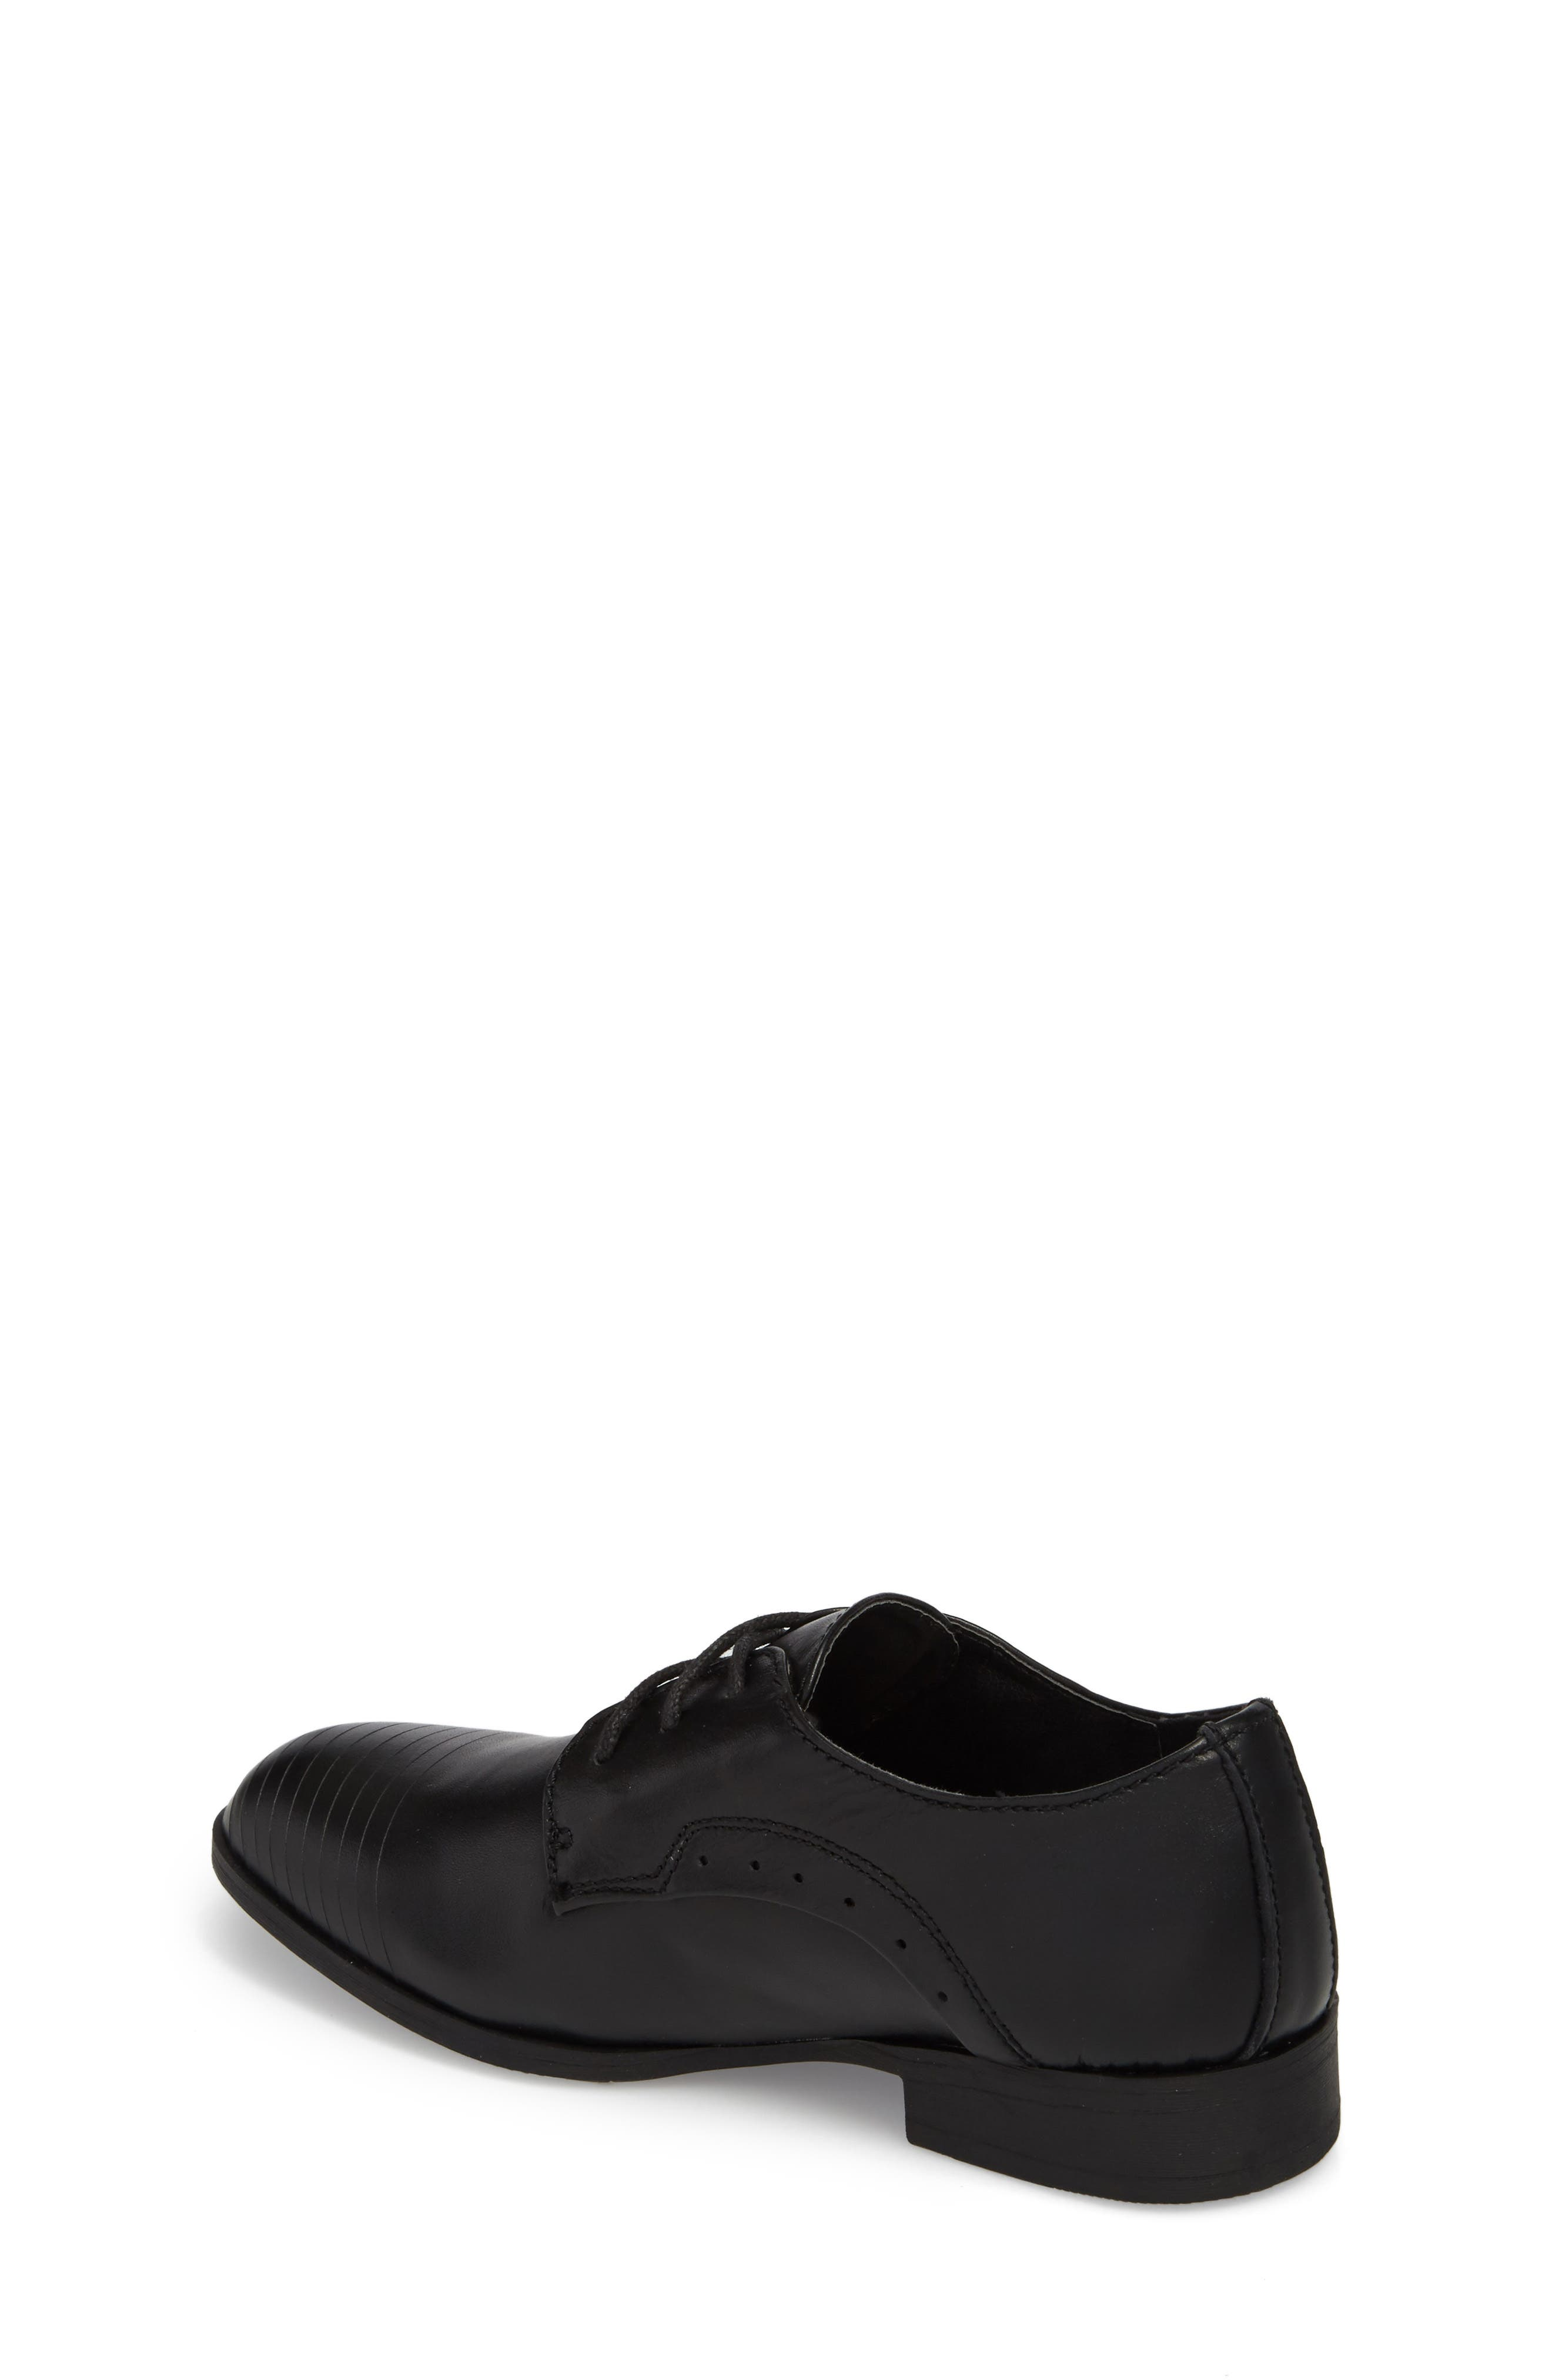 REACTION KENNETH COLE, Straight Line Derby, Alternate thumbnail 2, color, BLACK